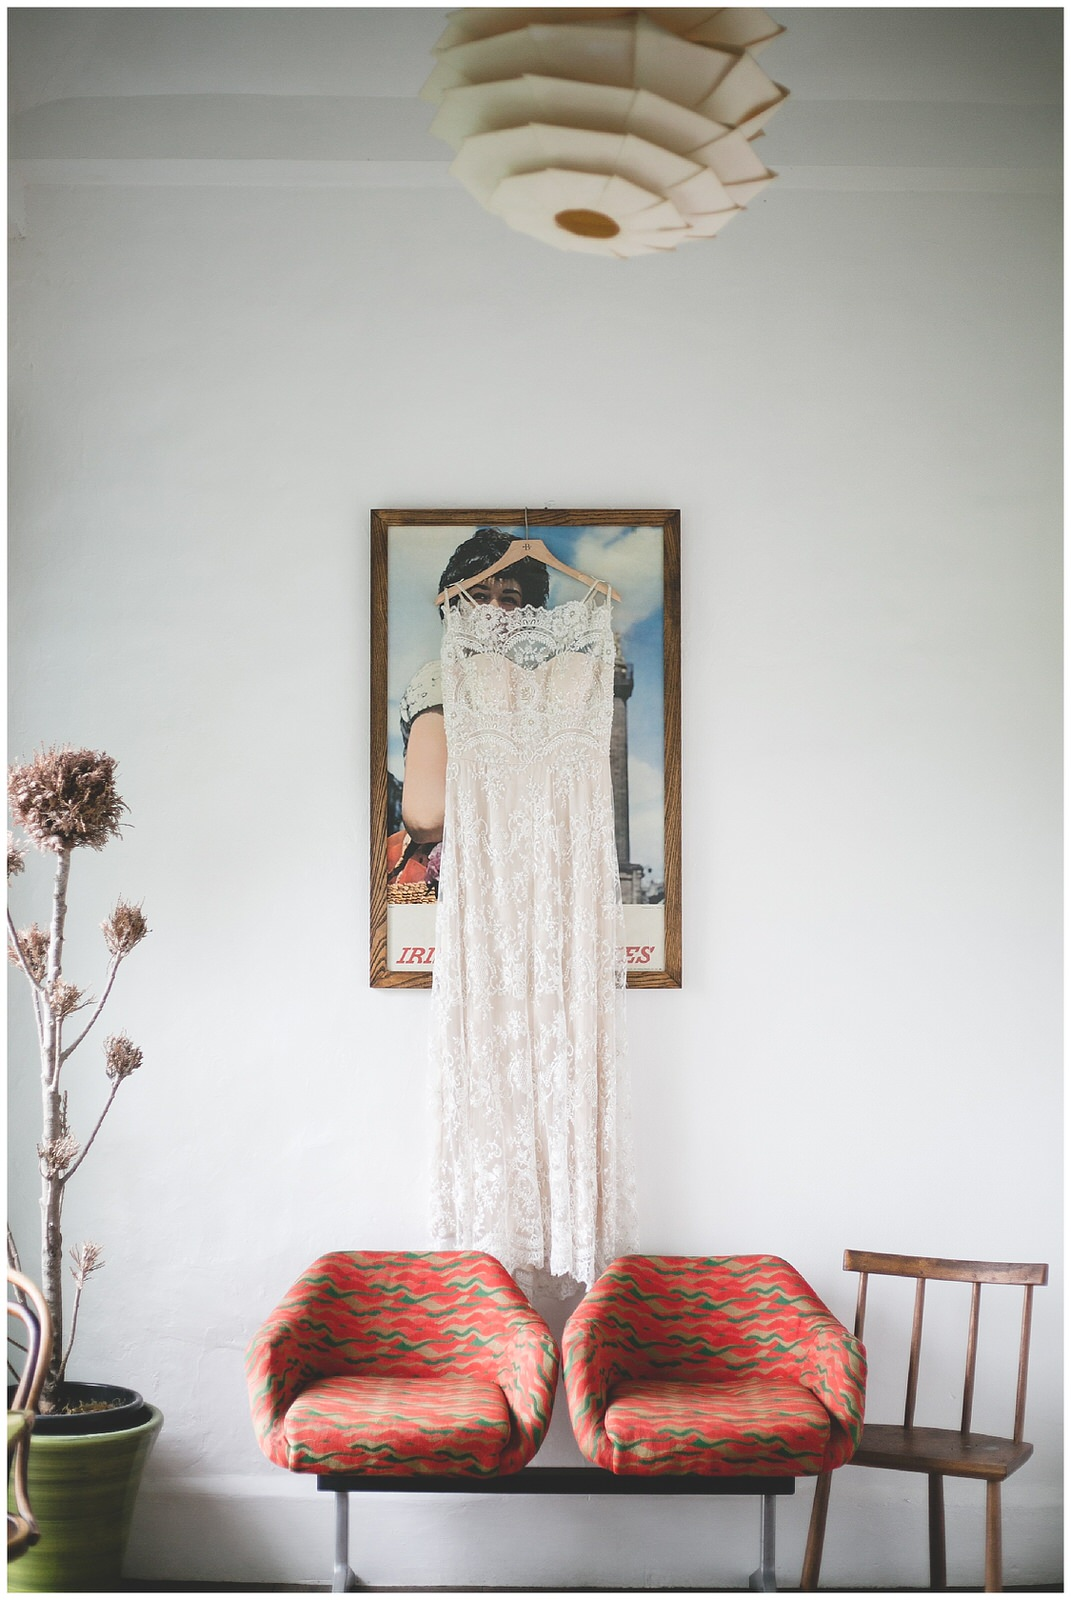 Sleevless white sequins wedding dress hanging in the airport waiting room at Bellinter House